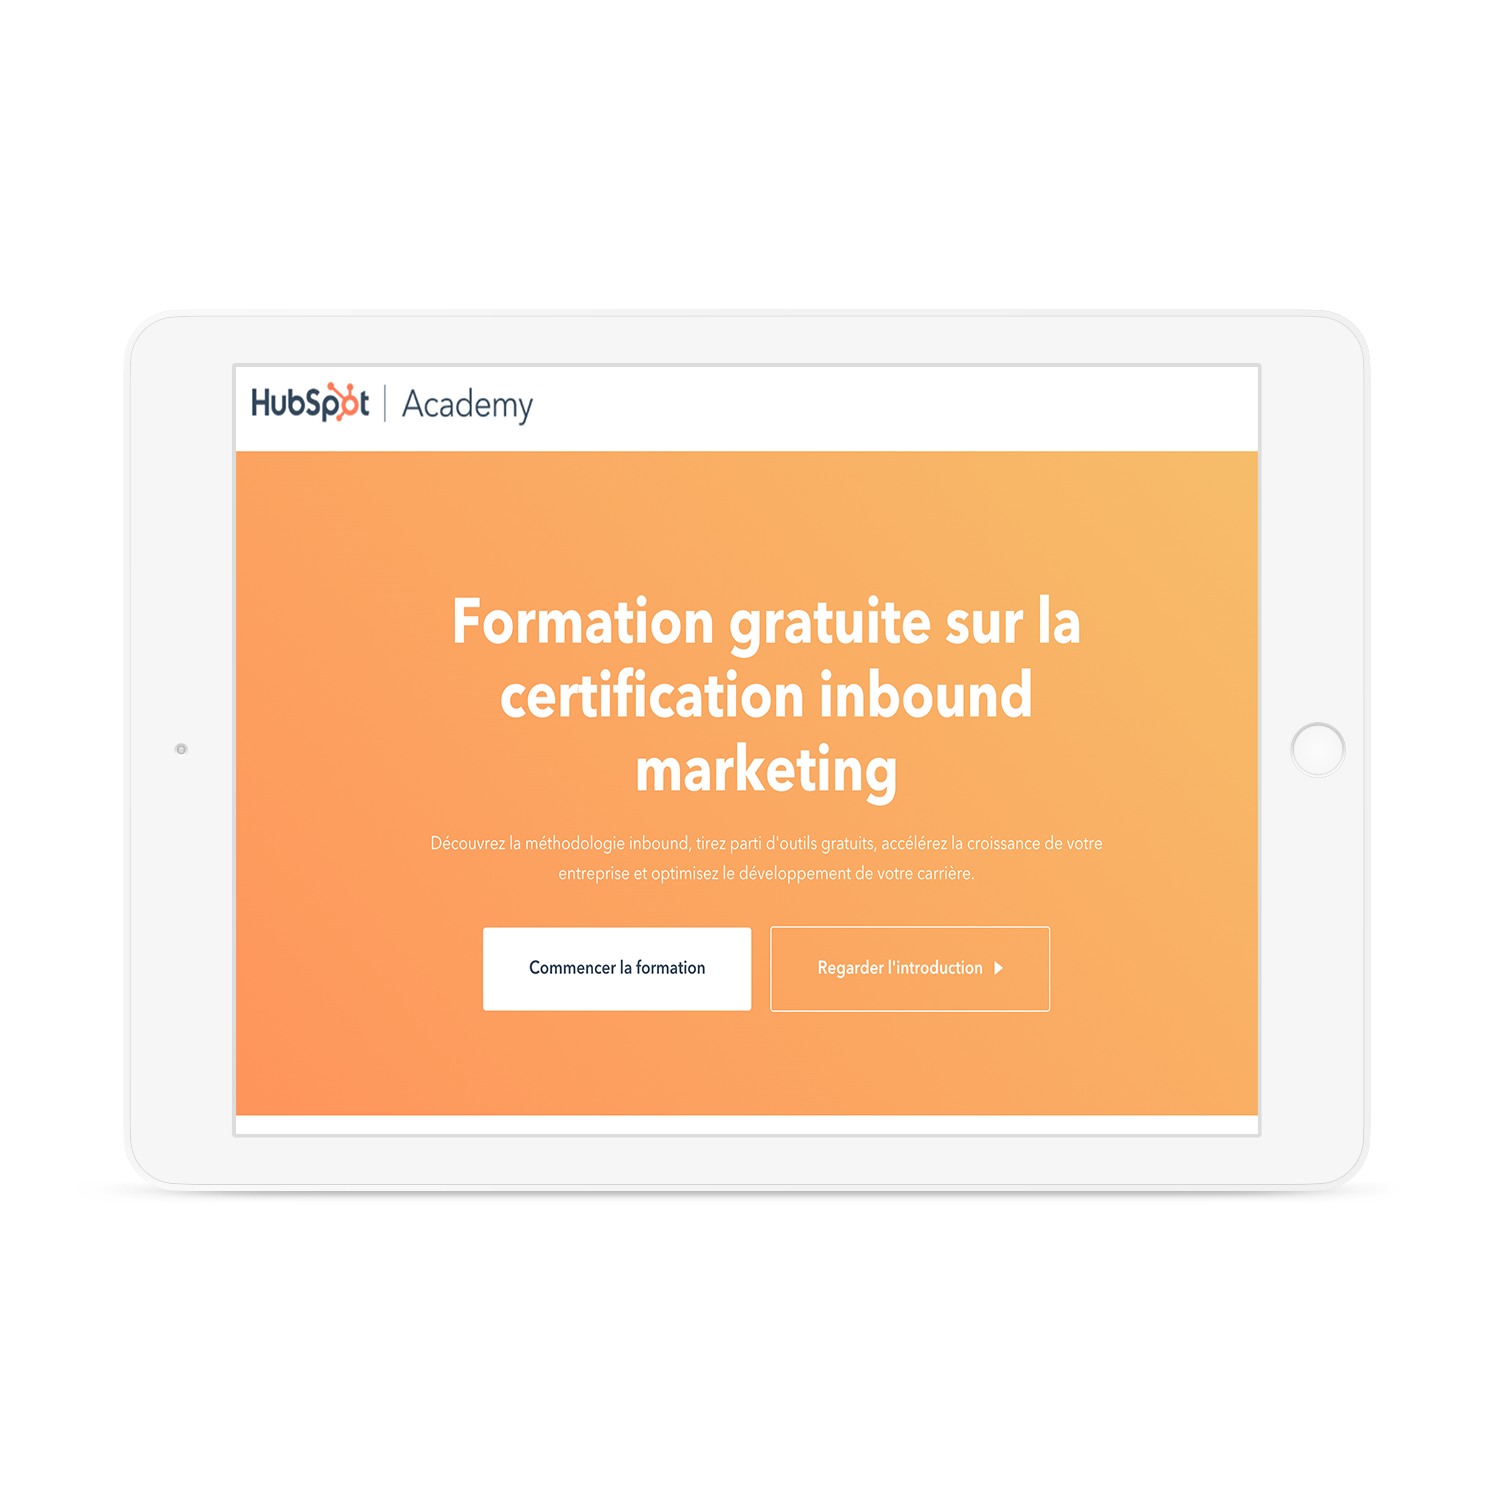 Formation gratuite sur la certification inbound marketing